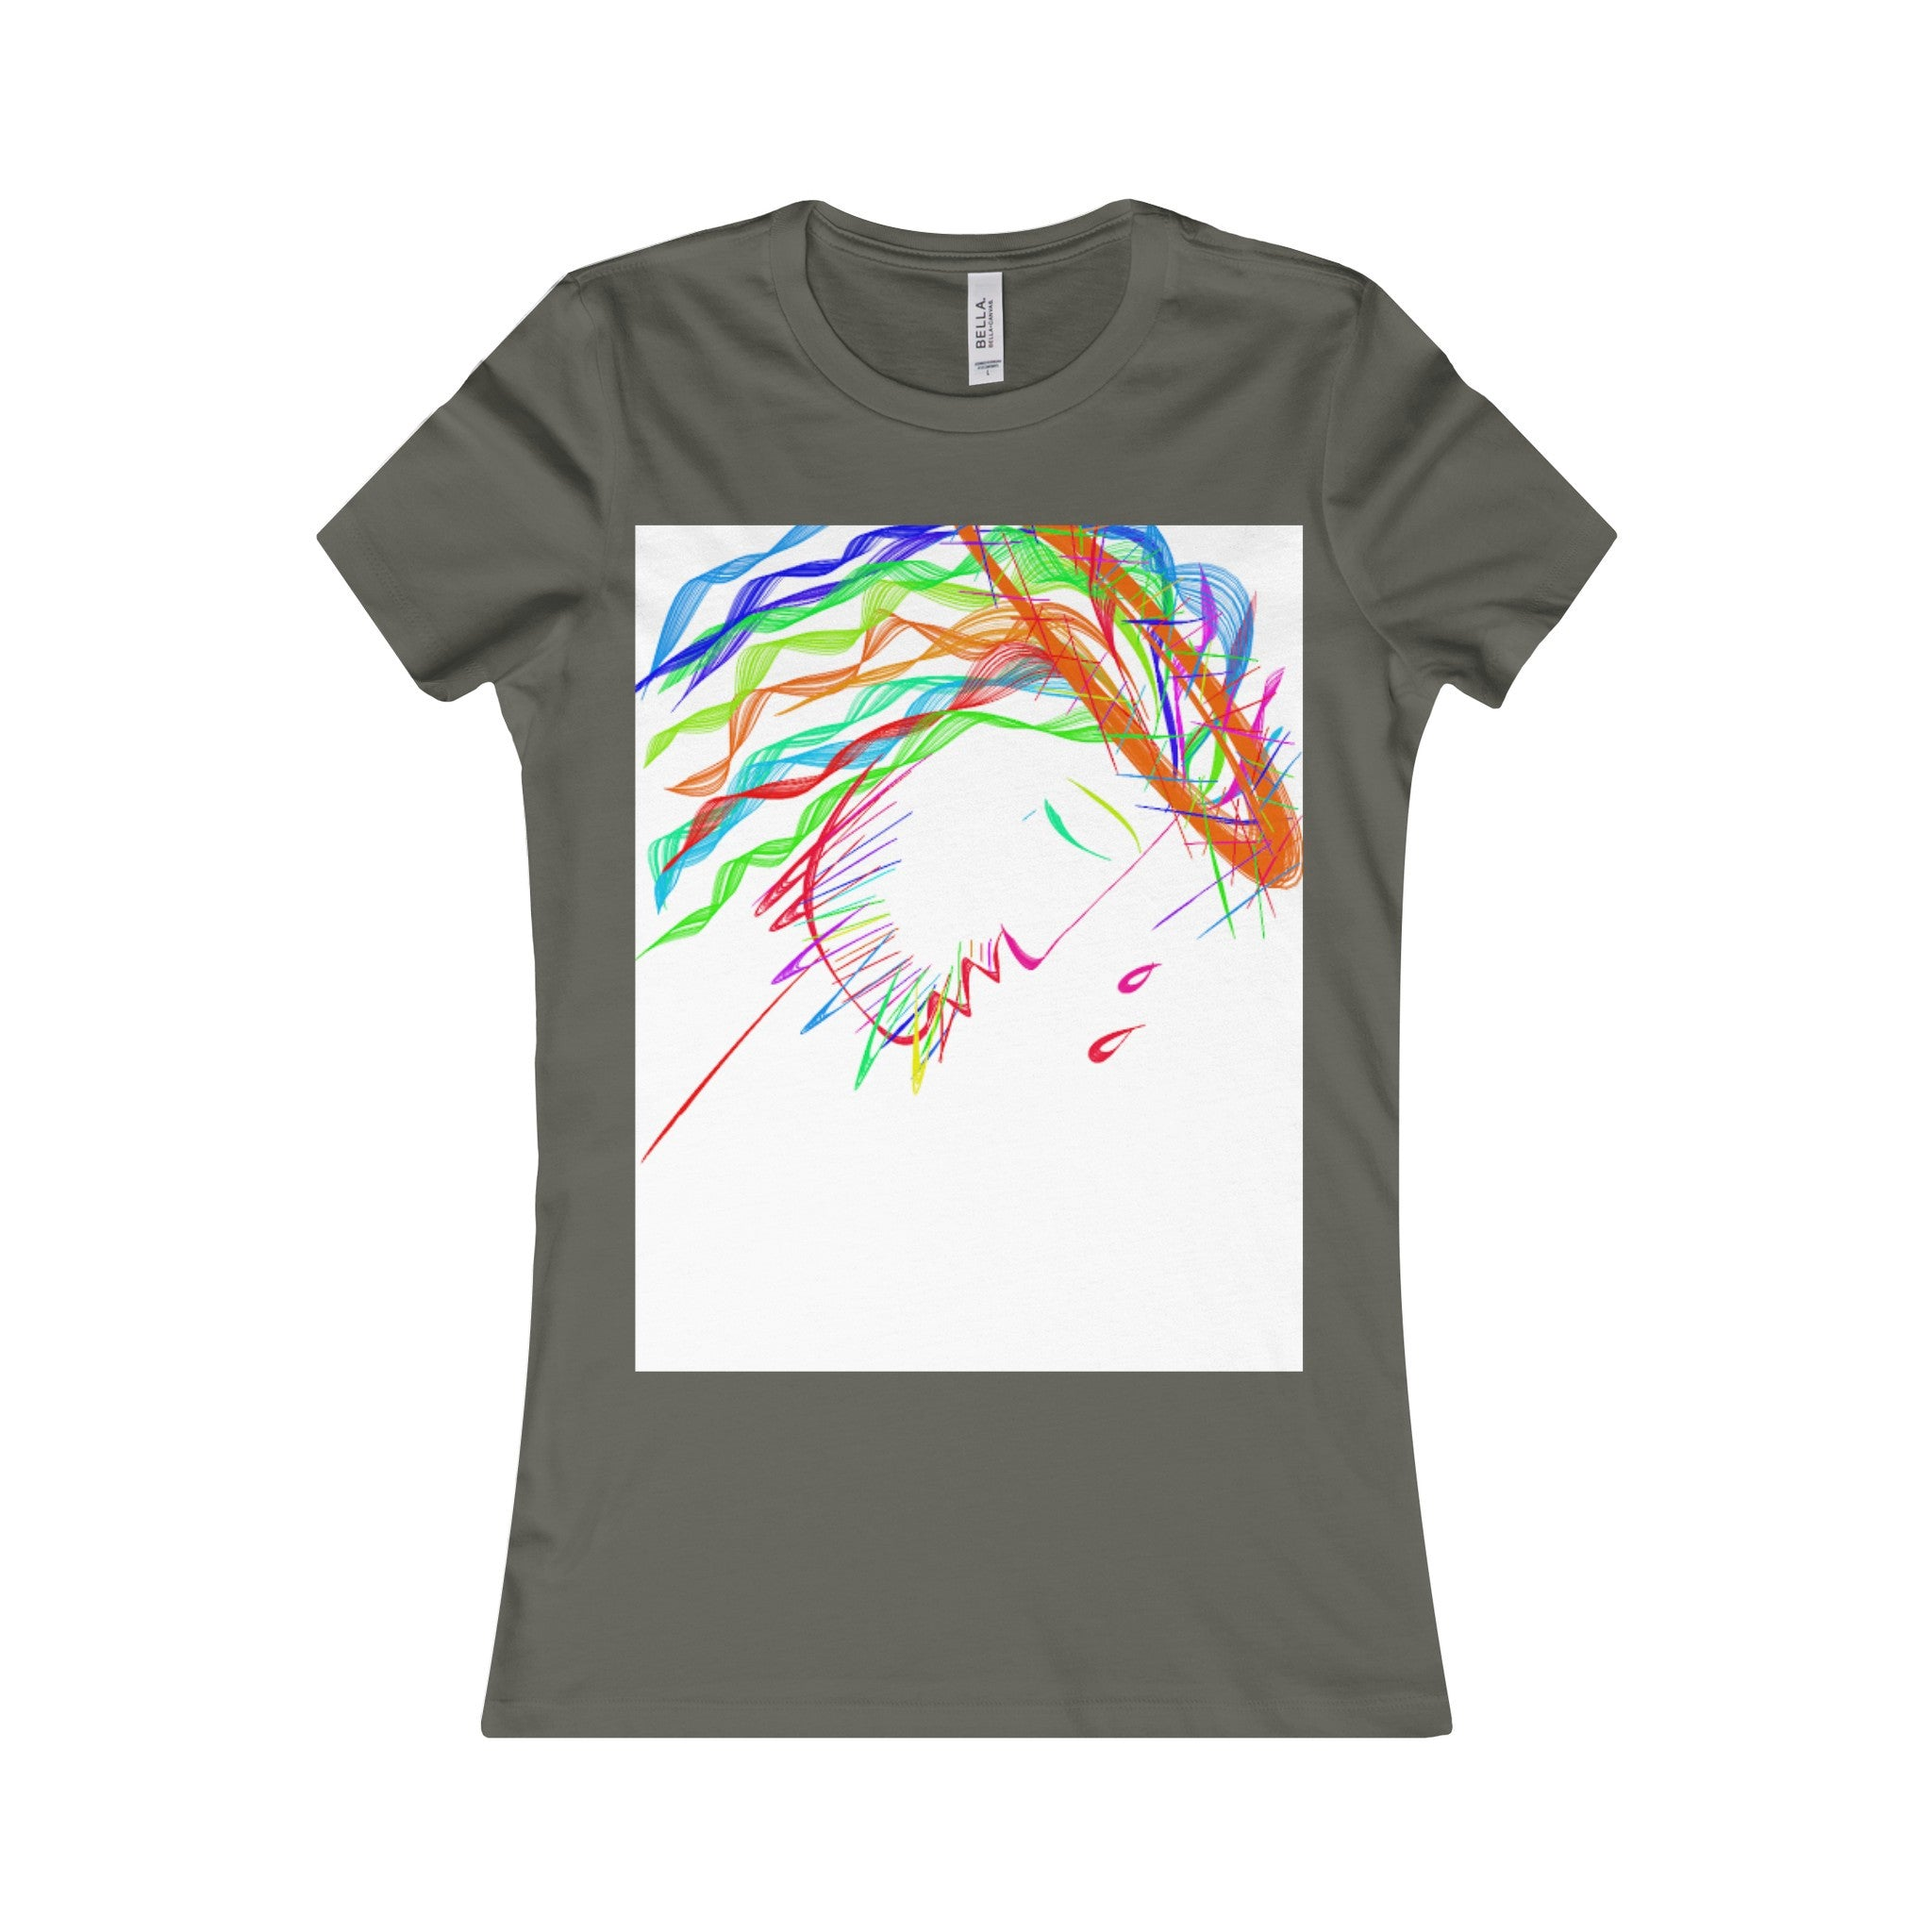 Women's Favorite Tee-T-Shirt-Printify-Army-S-Love My Husband Shop